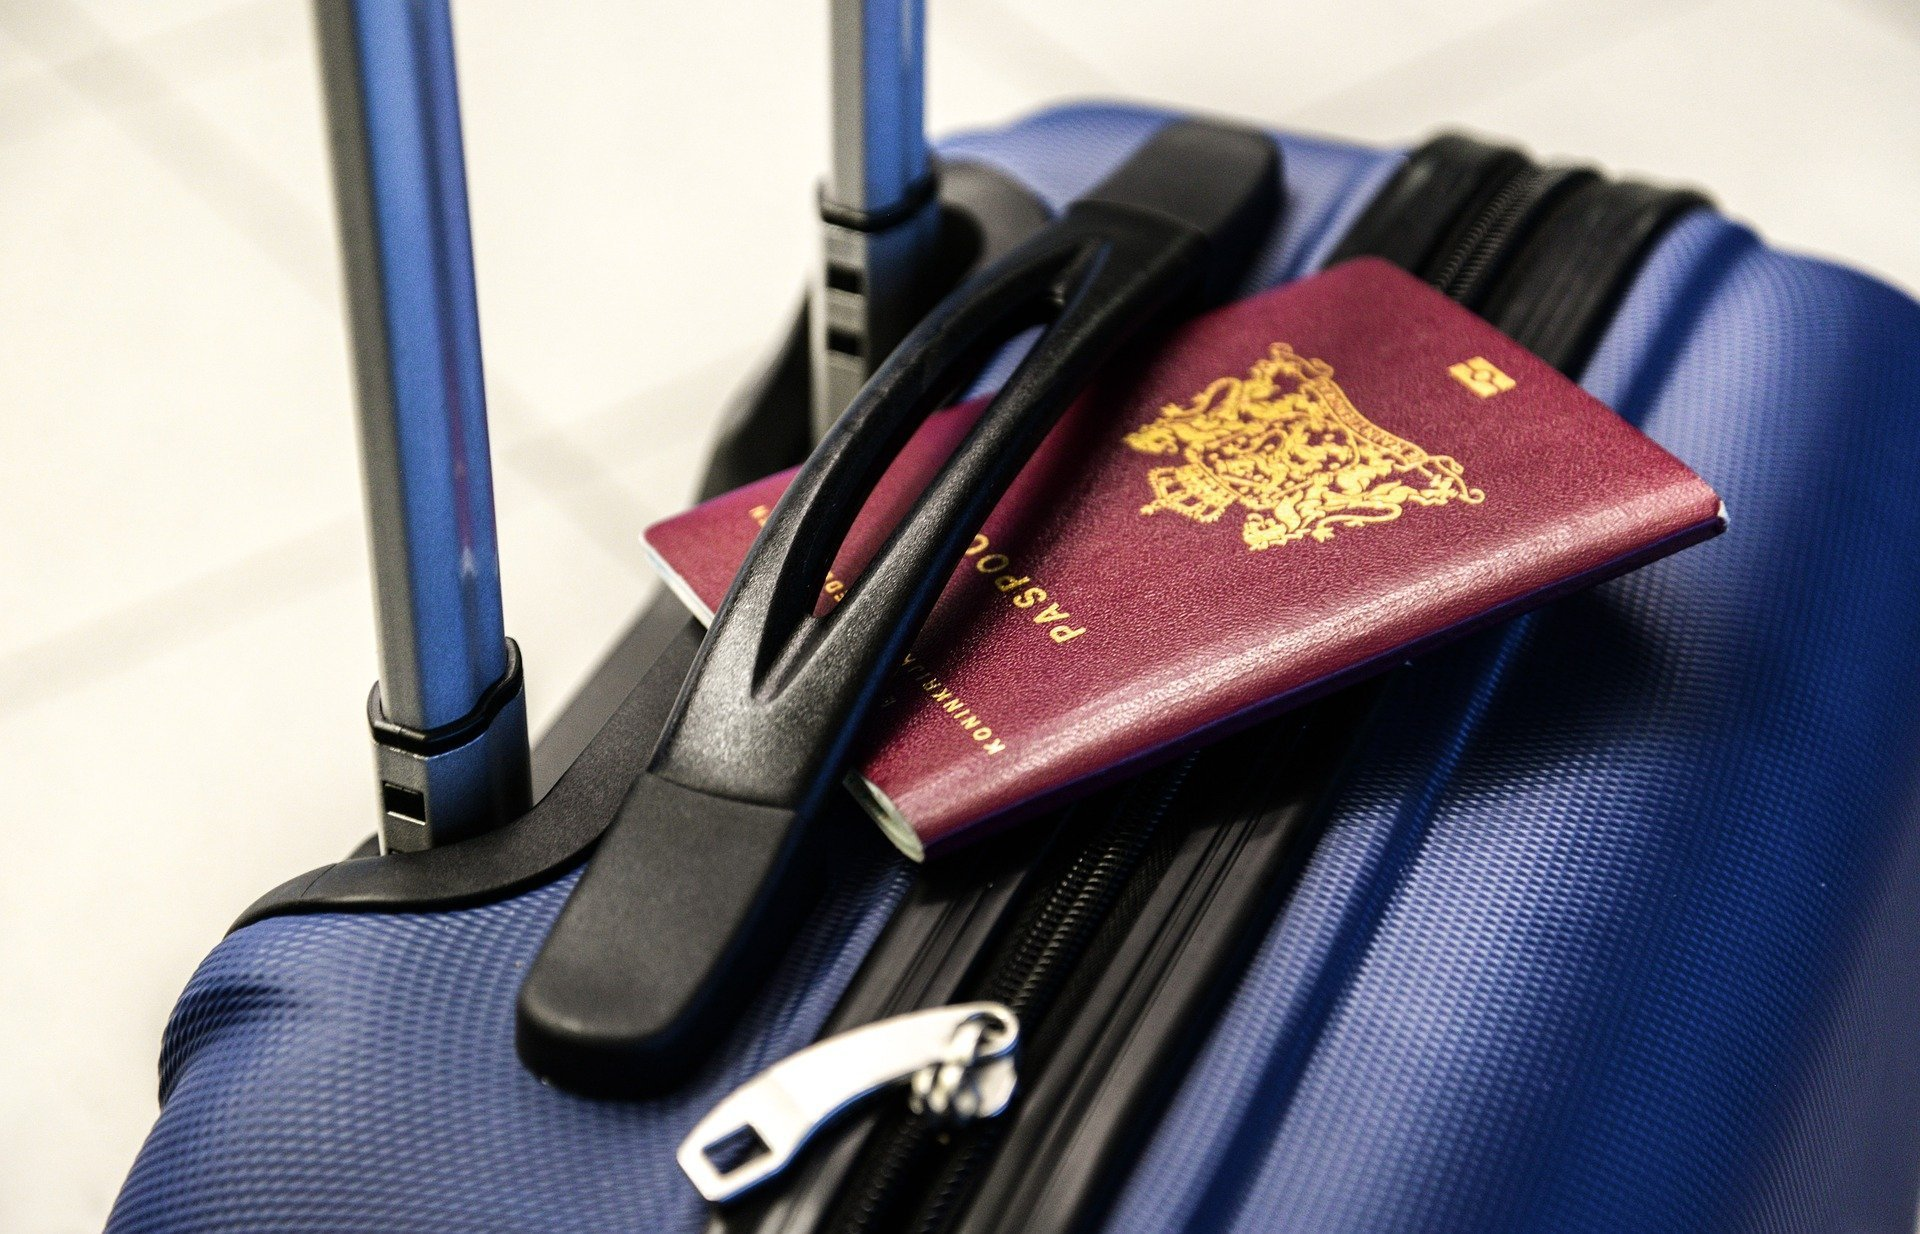 Image description: burgundy passport wedged into the handle of a blue suitcase.